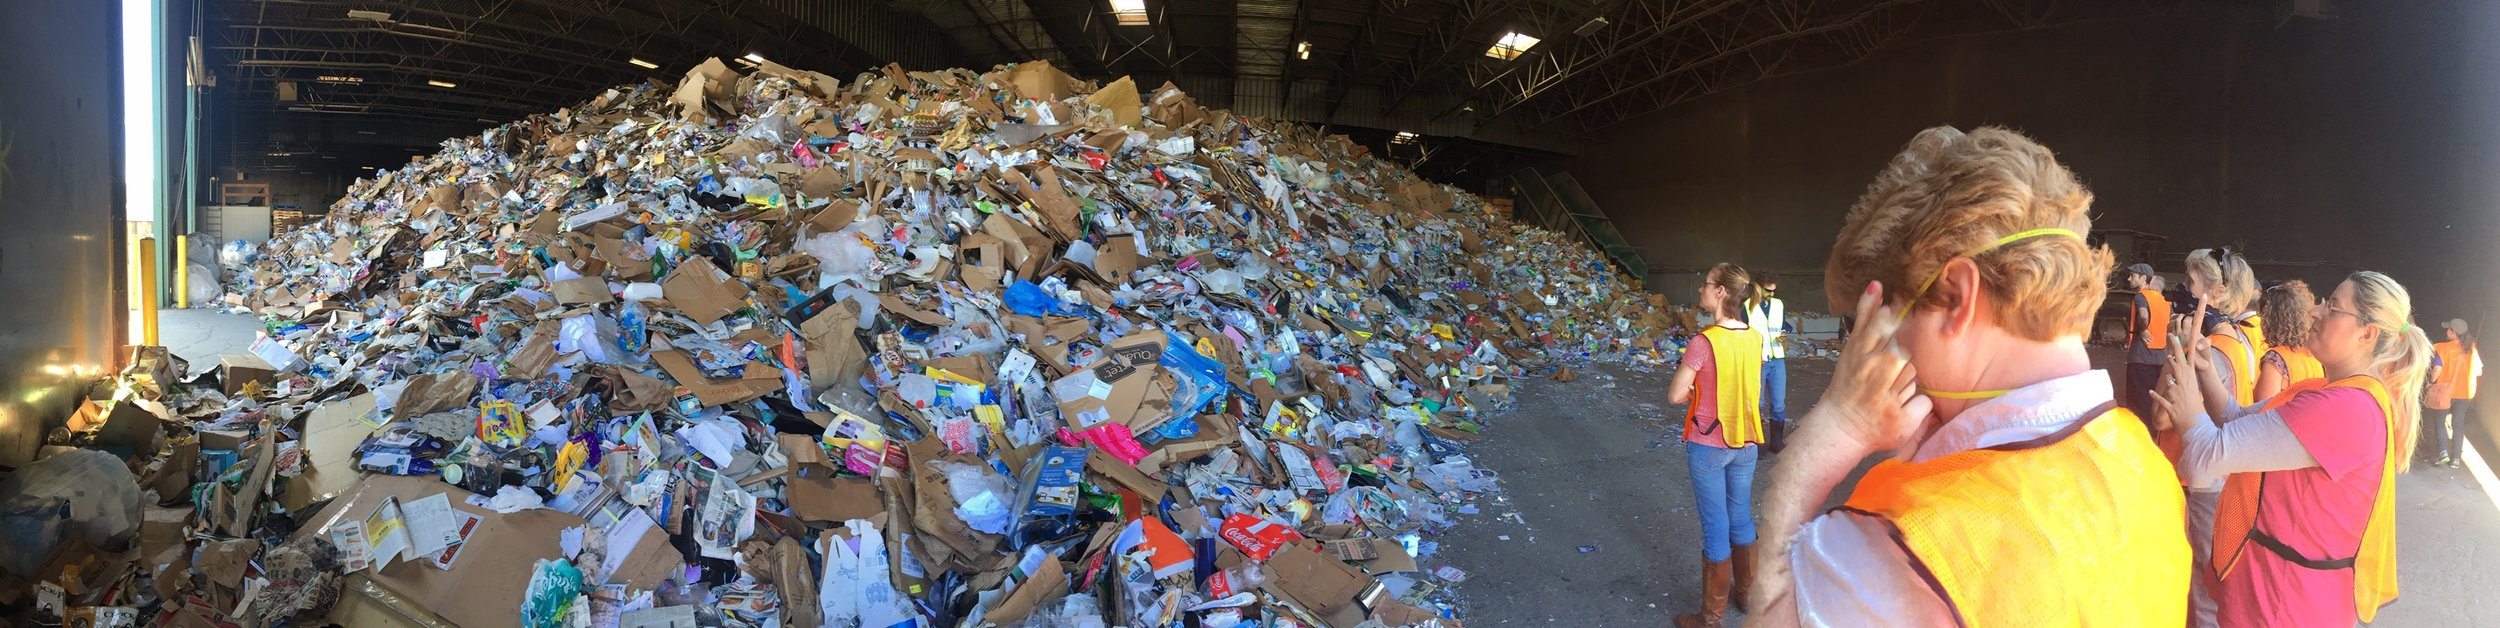 Piles of materials at a Material Recovery Facility (2015)